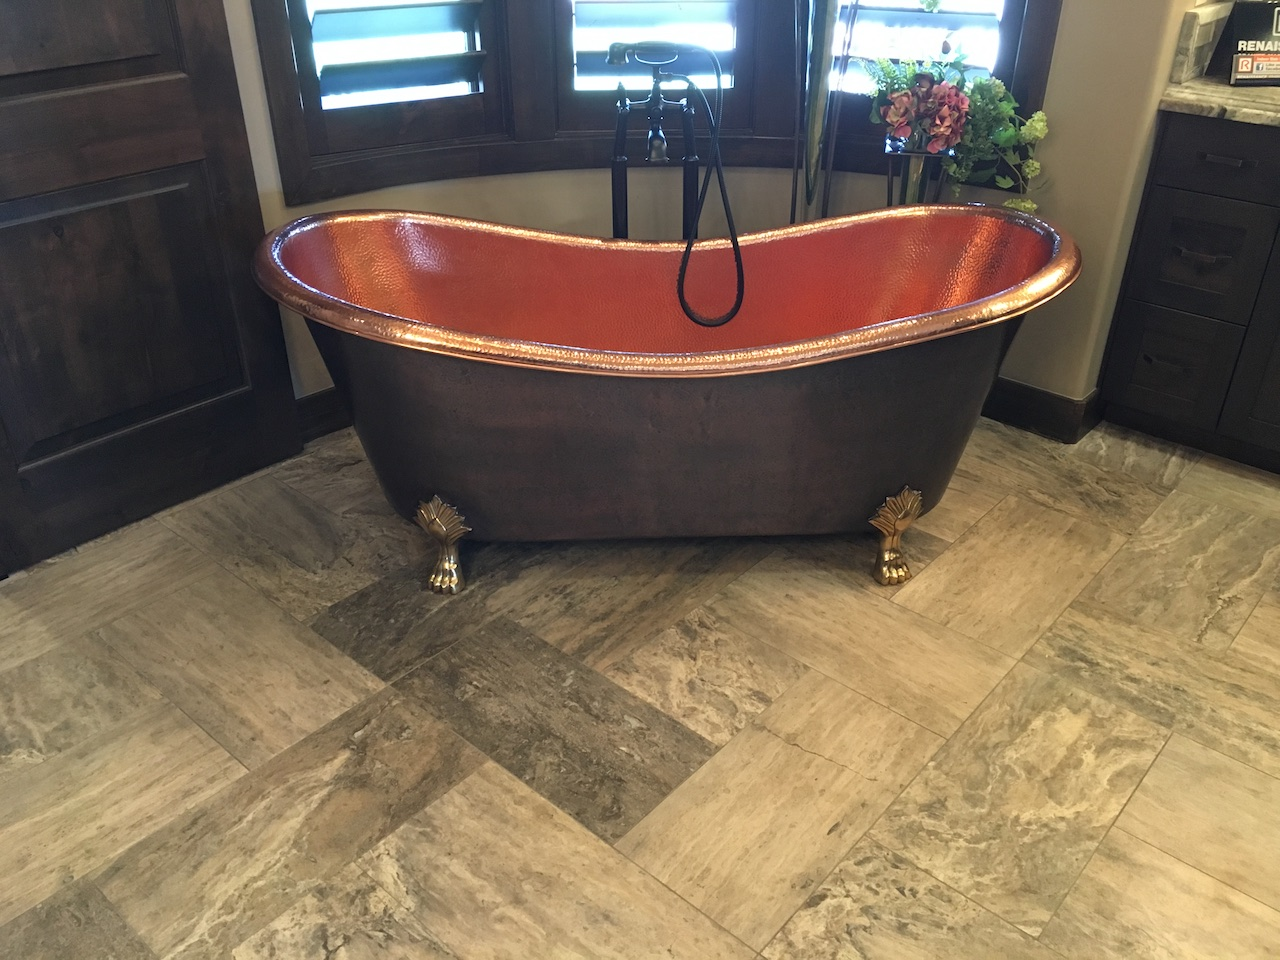 The finished bathroom as seen in the 2017 St. George Parade of Homes